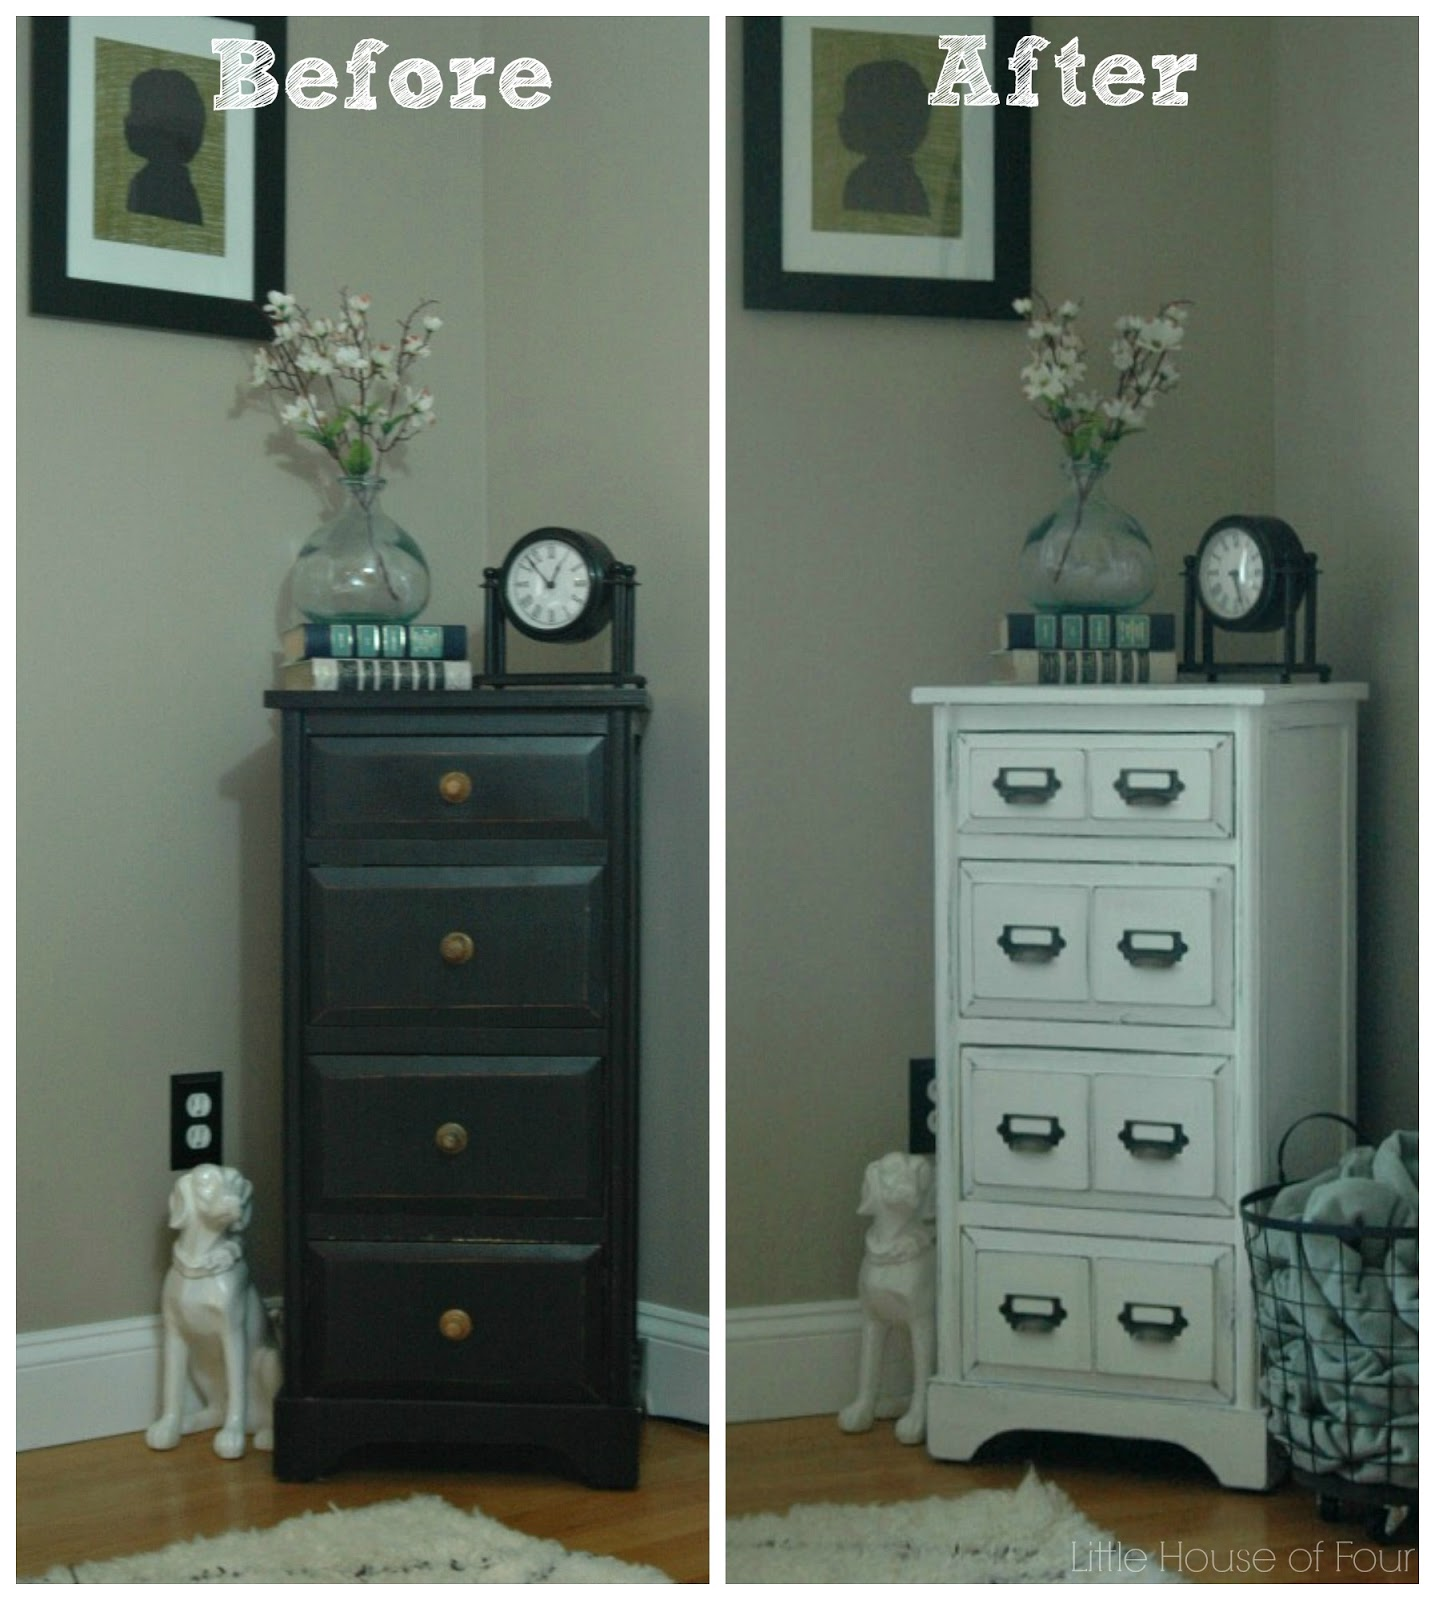 Little House Of Four Library Card Catalog Inspired Furniture Makeover